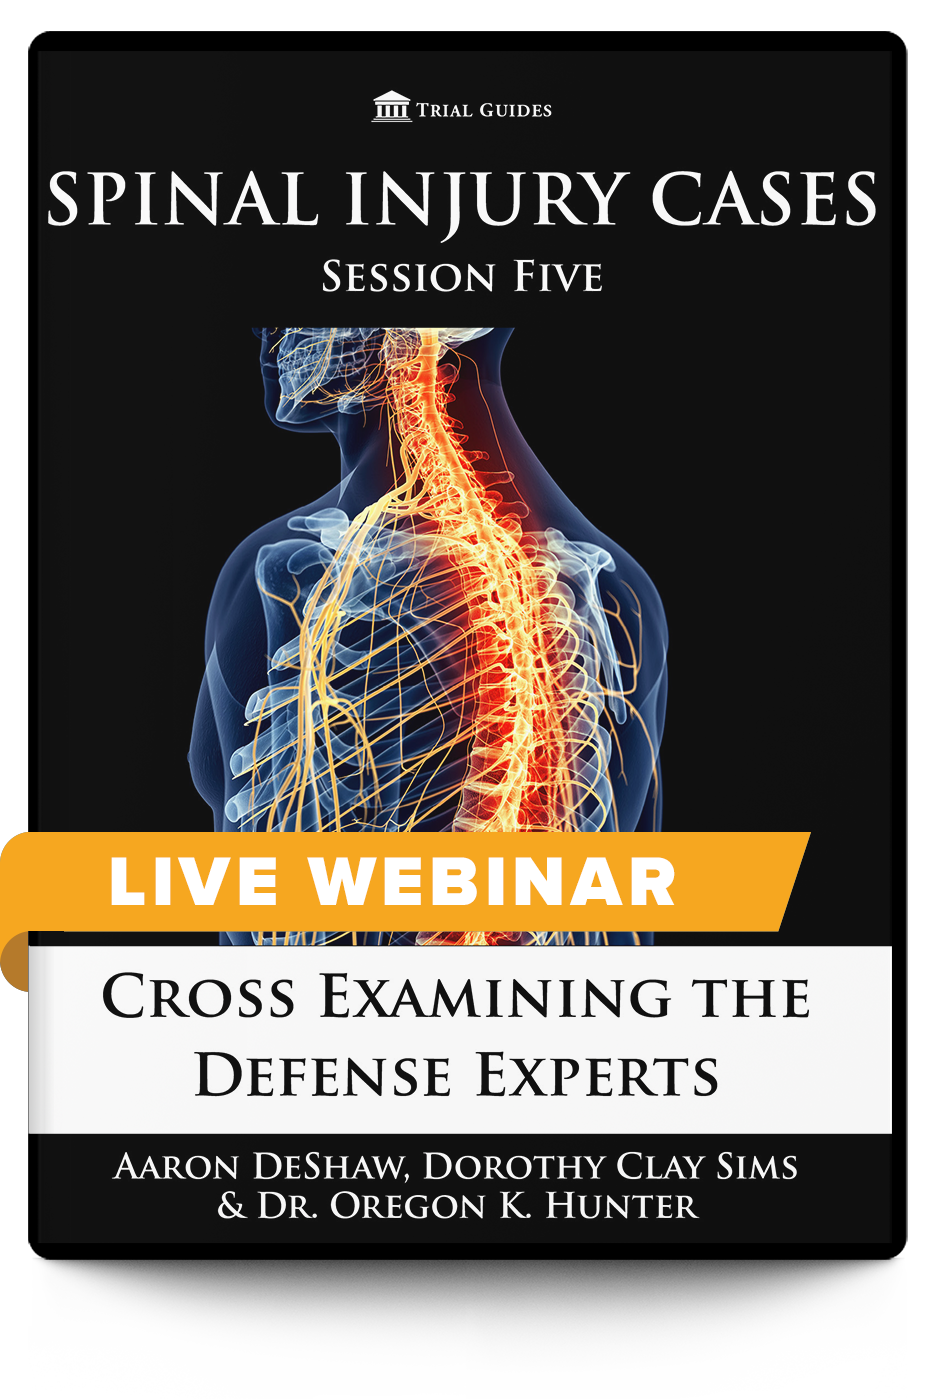 Spinal Injury Cases, Session Five: Cross-Examining Defense Experts - Live Webinar